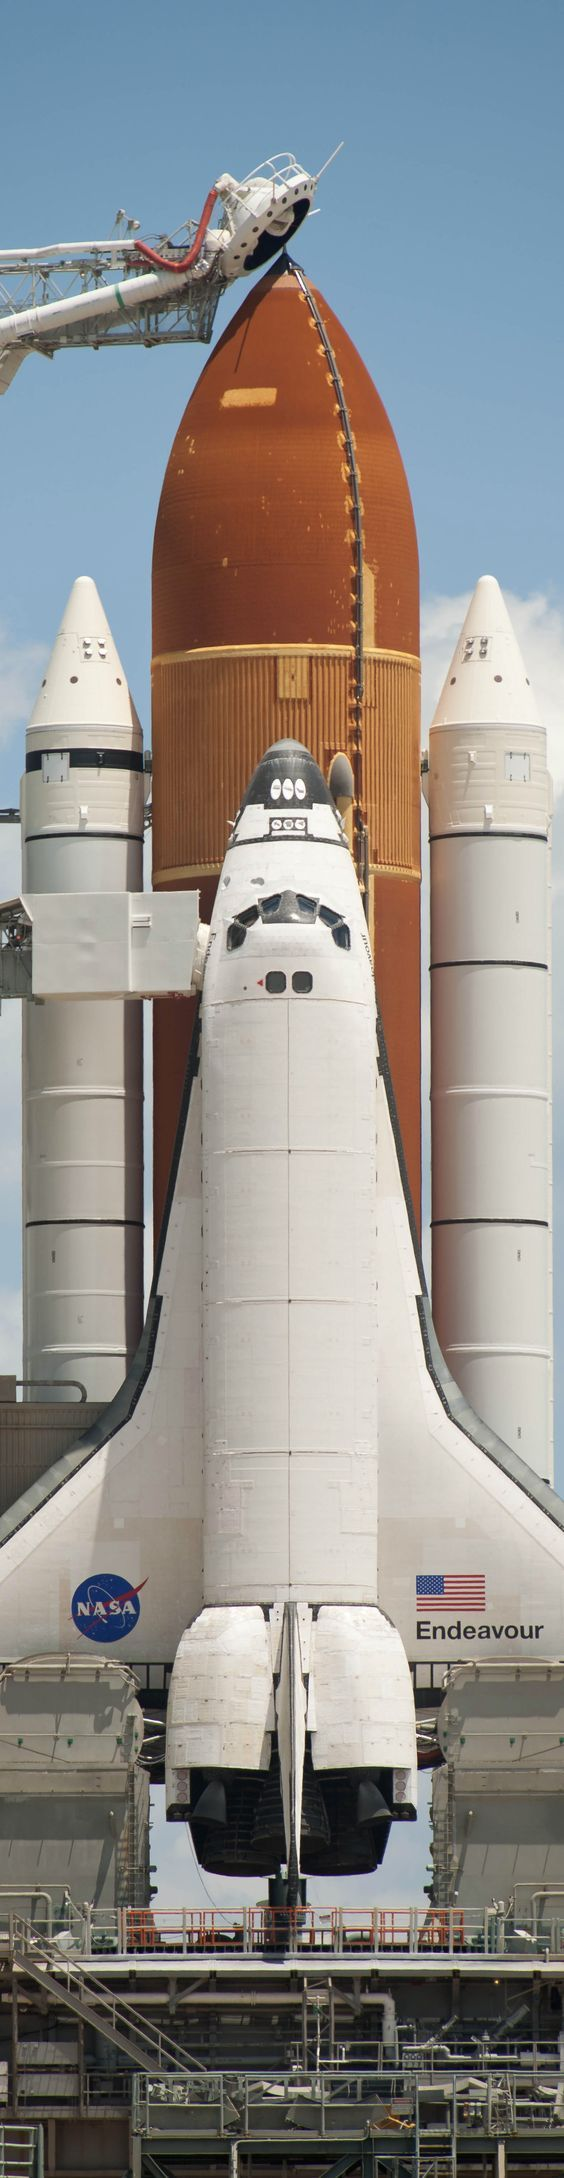 What more does a Space Shuttle infographic really need to say?: